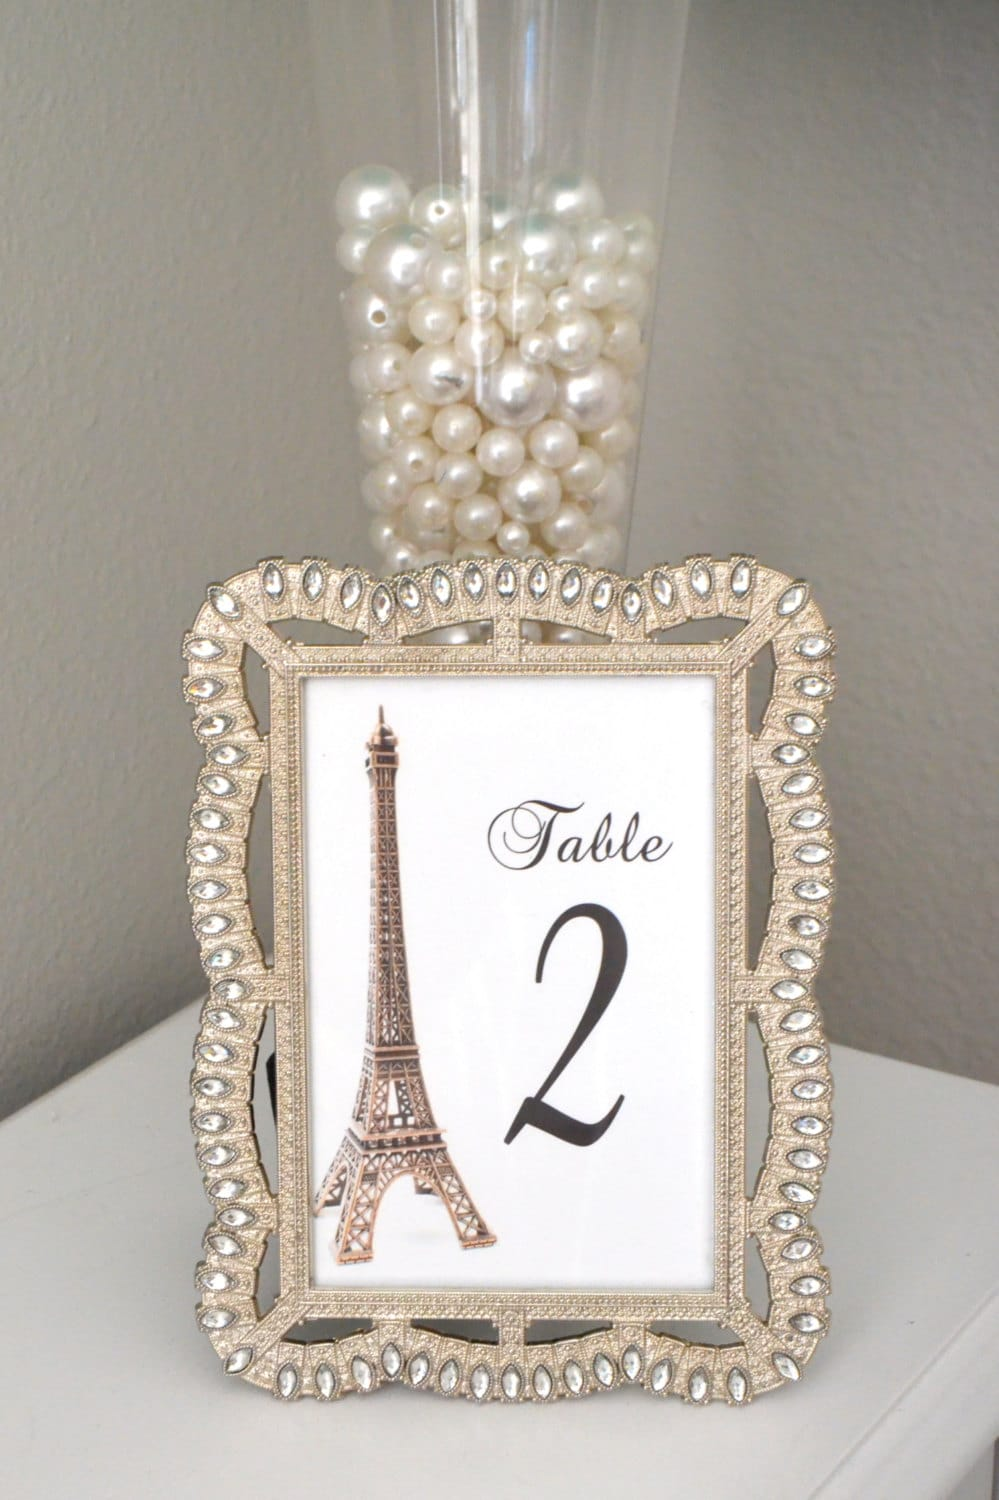 Eiffel tower table number parisians theme decor paris for Paris themed decor